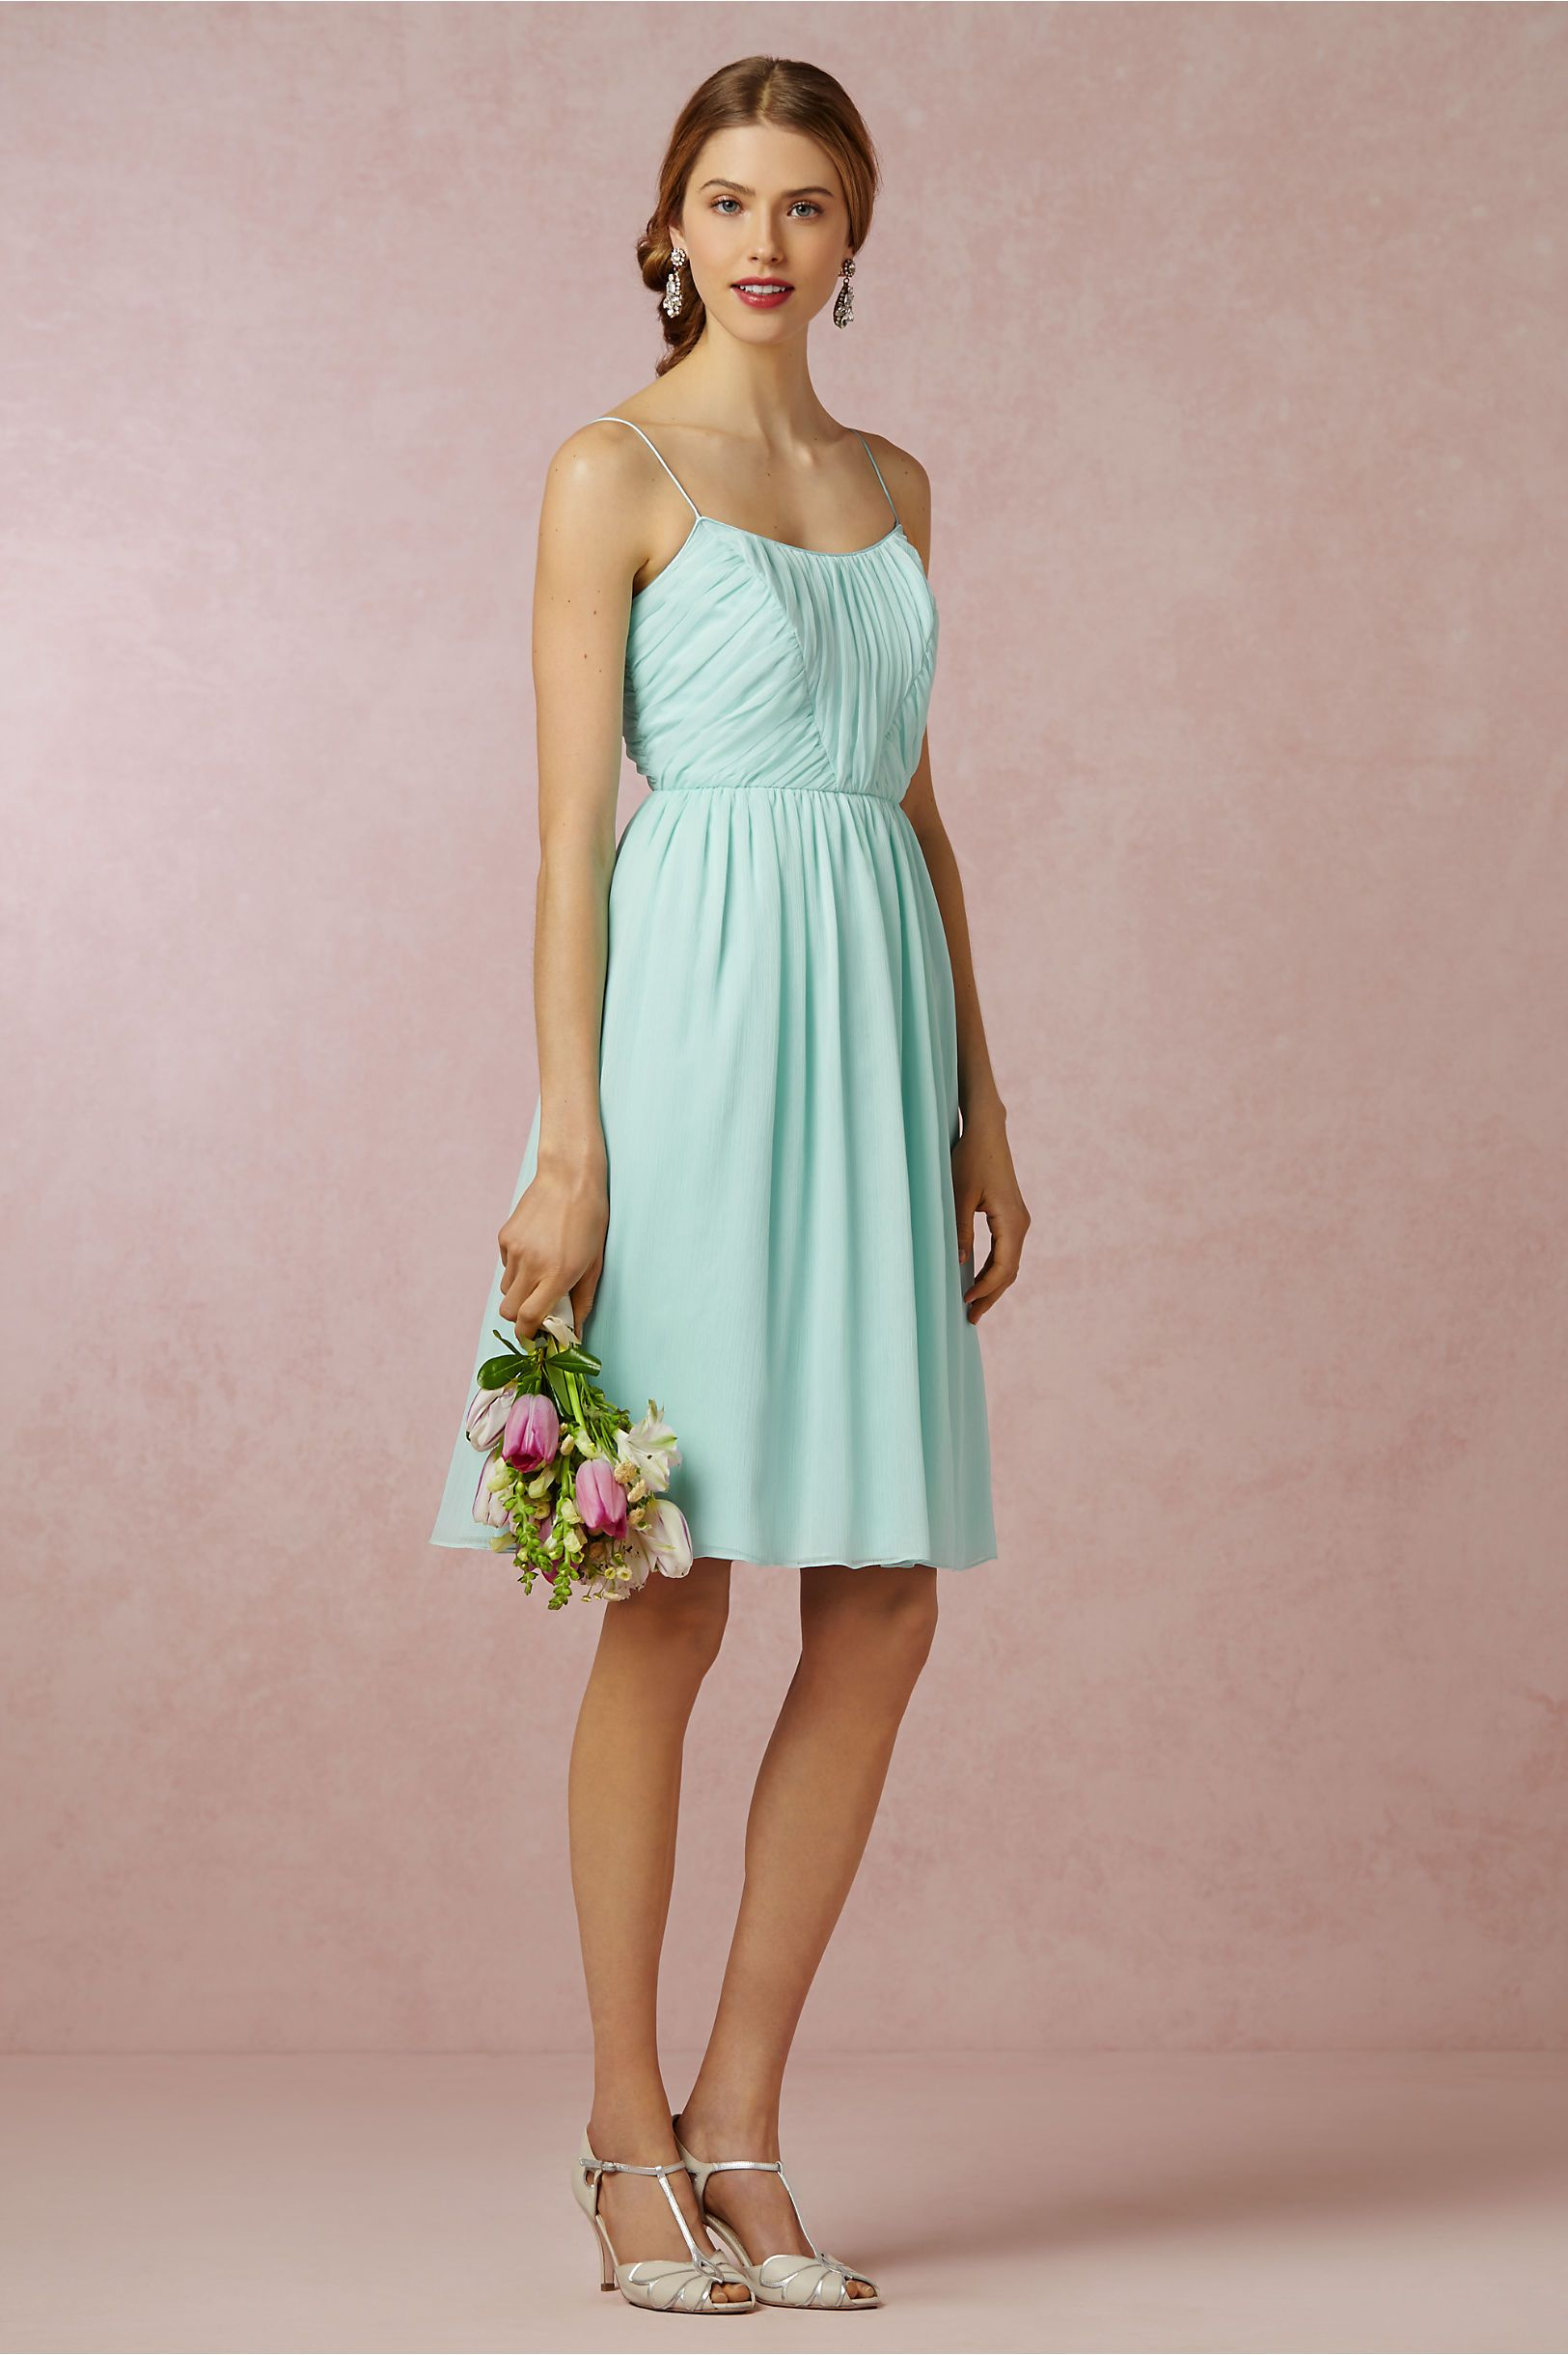 Giselle Dress from BHLDN - @khoulz what do you think of this dress ...